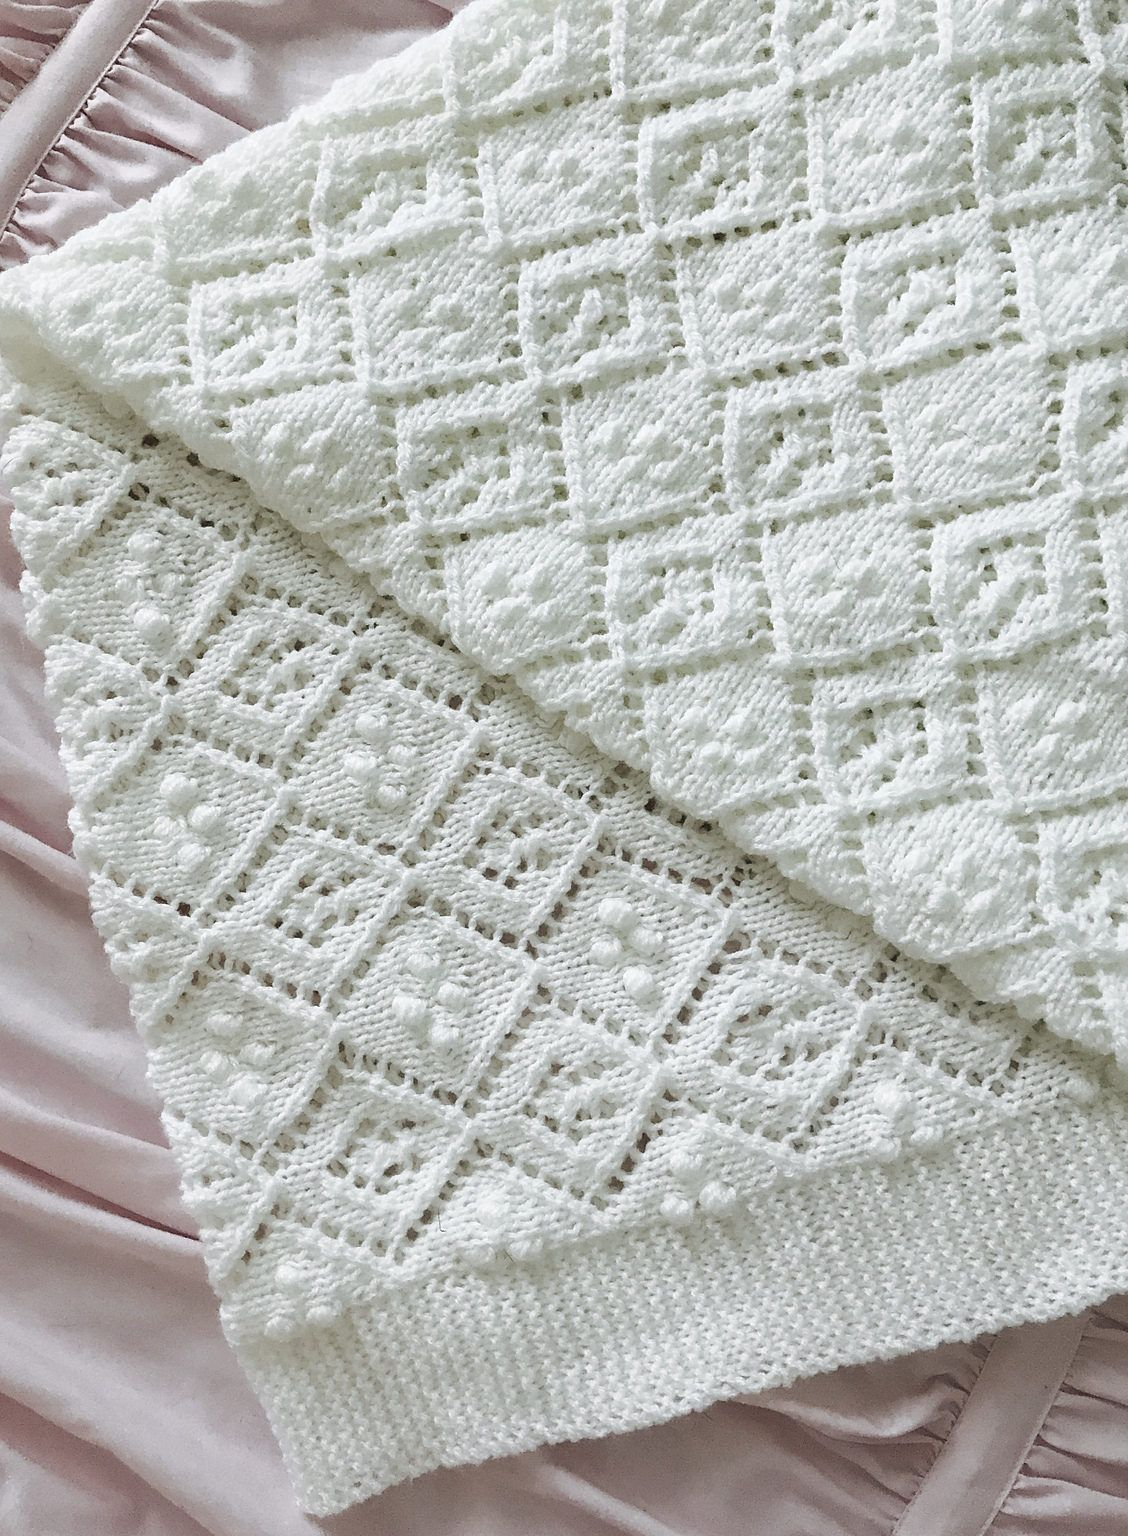 Easy Knitting Pattern For Baby Blanket Cable Knit Ba Blanket Patterns The Funky Stitch Girl Knitting